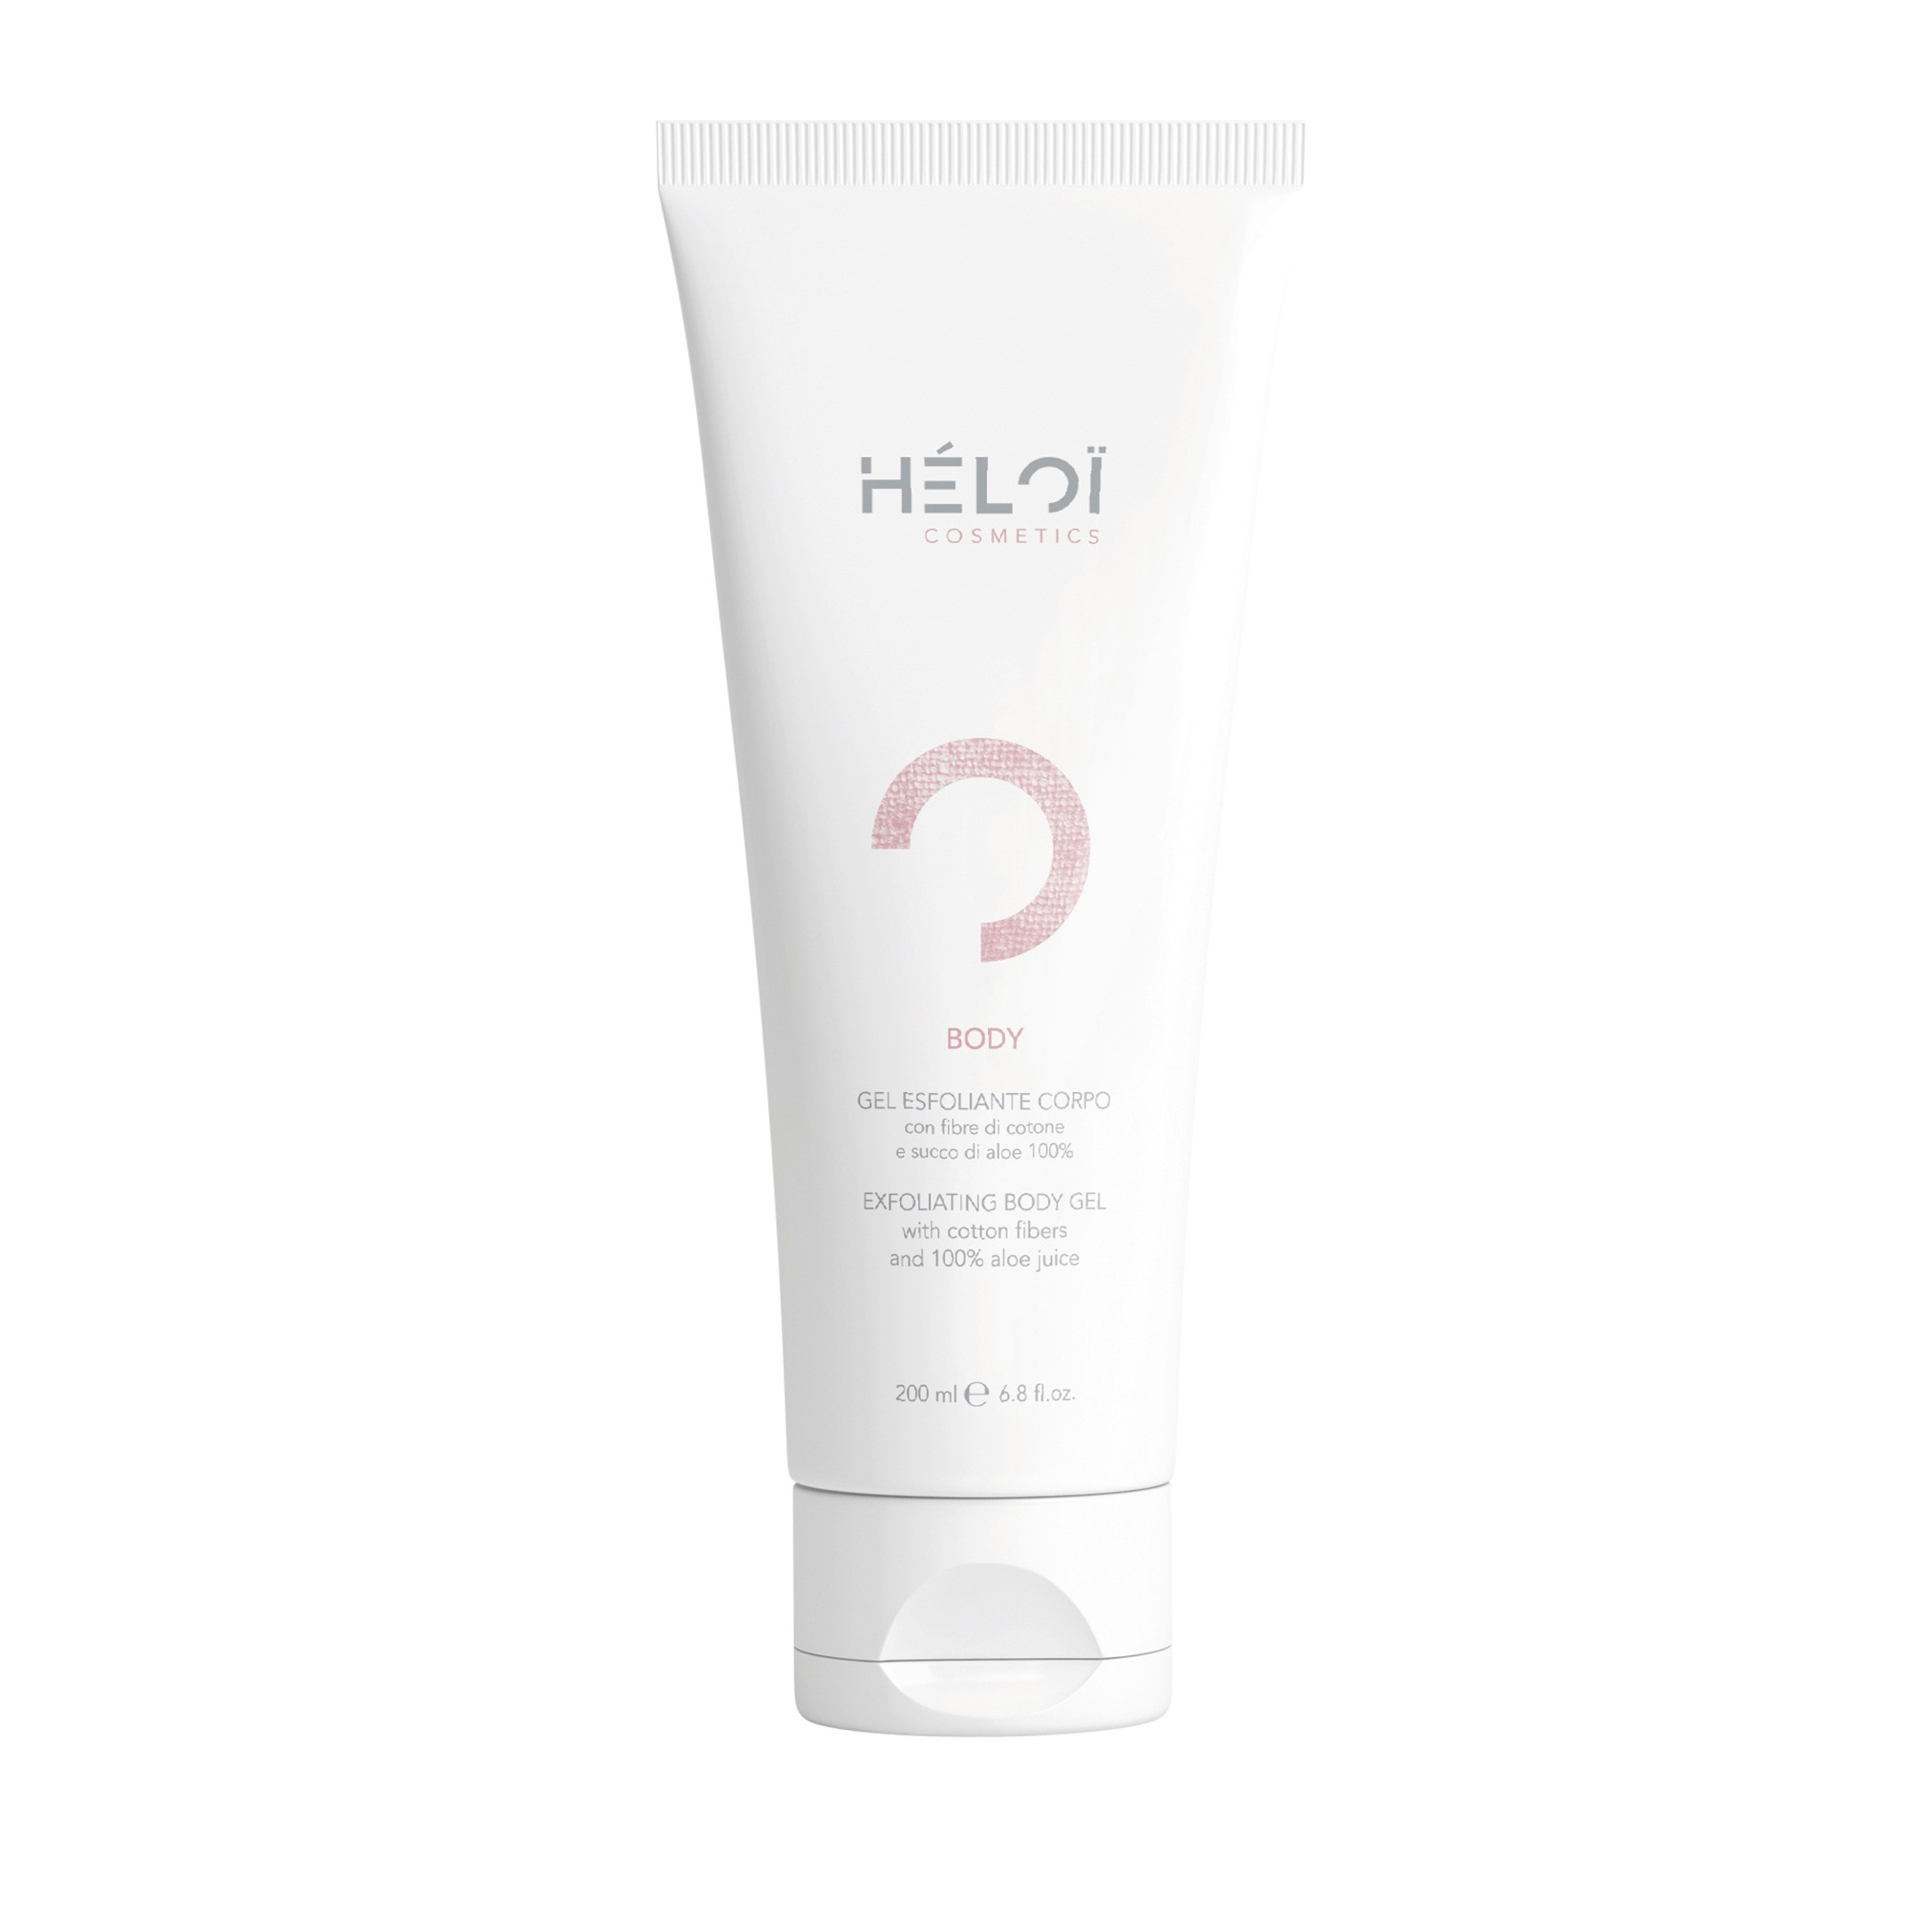 Gel esfoliante corpo